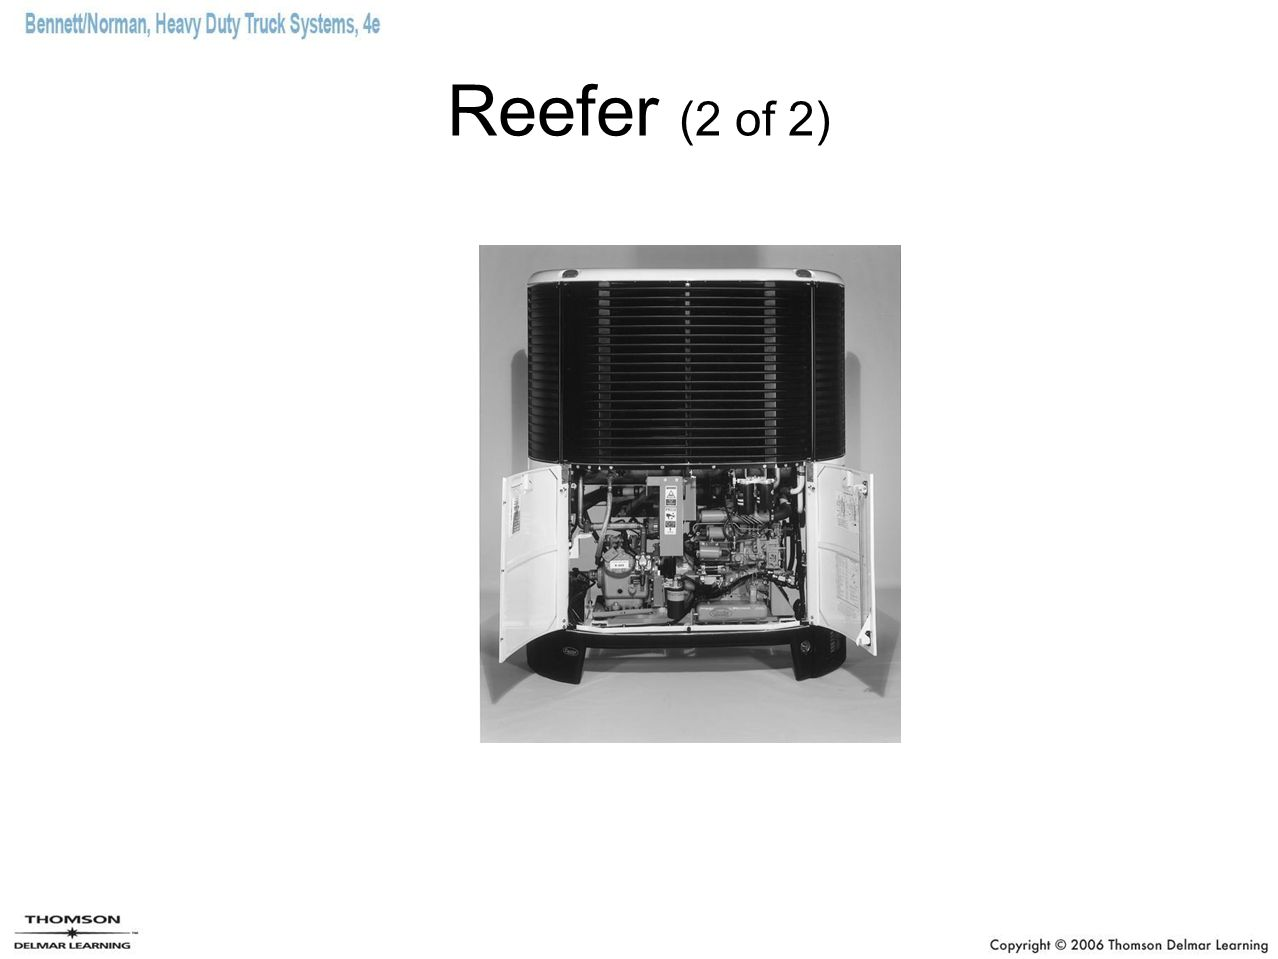 Reefer (2 of 2)